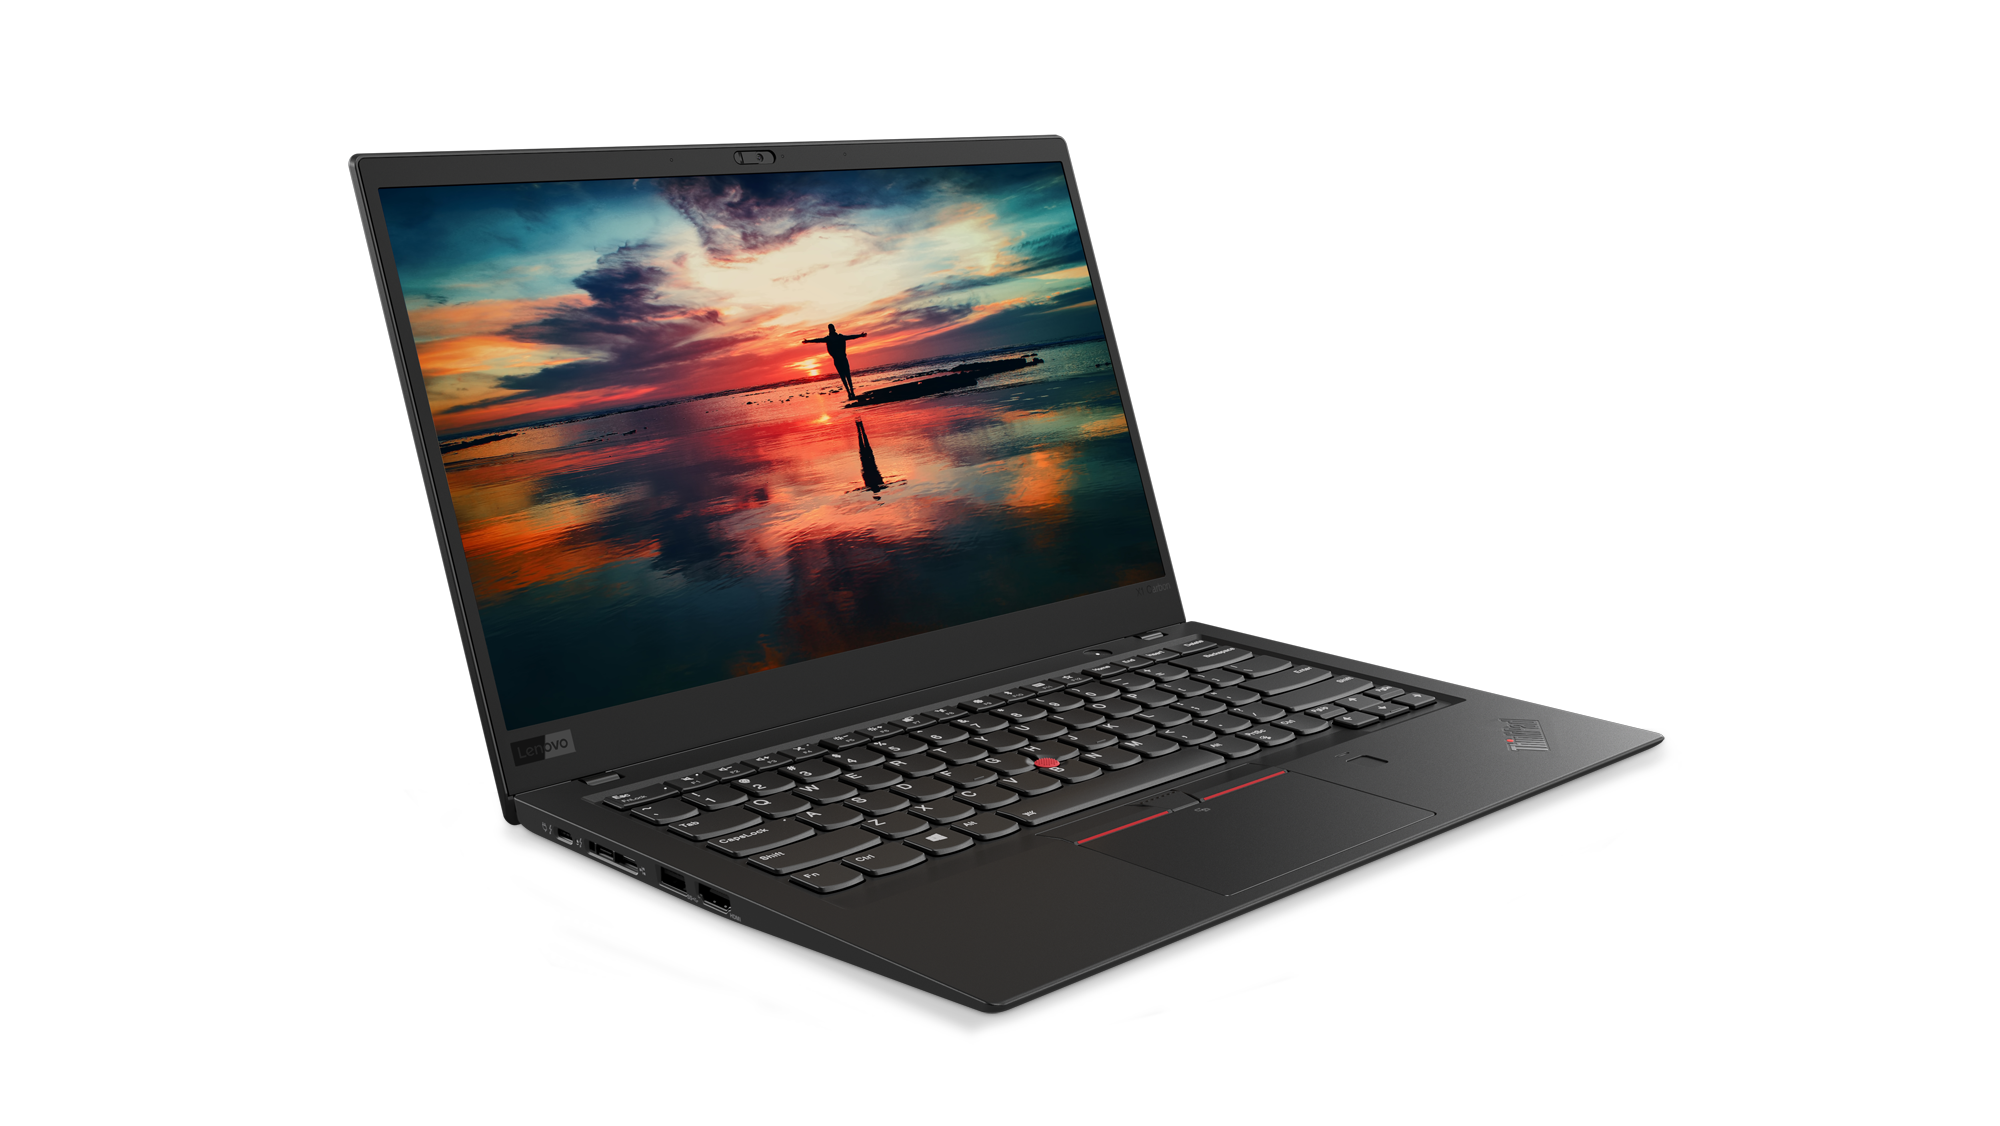 Lenovo's ThinkPad X1 Carbon has an HDR screen